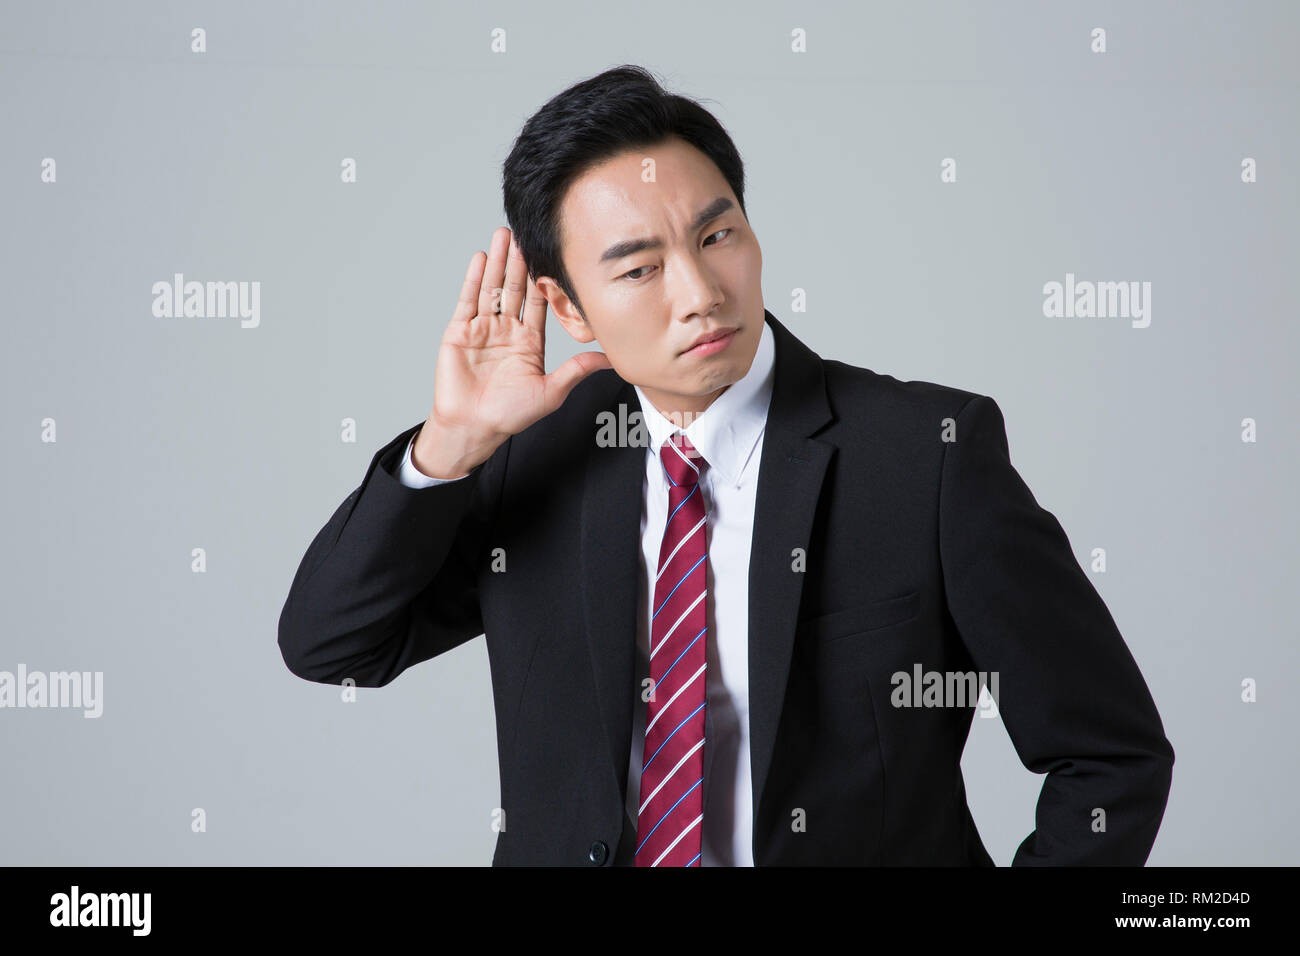 Young businessman concept photo. 114 - Stock Image